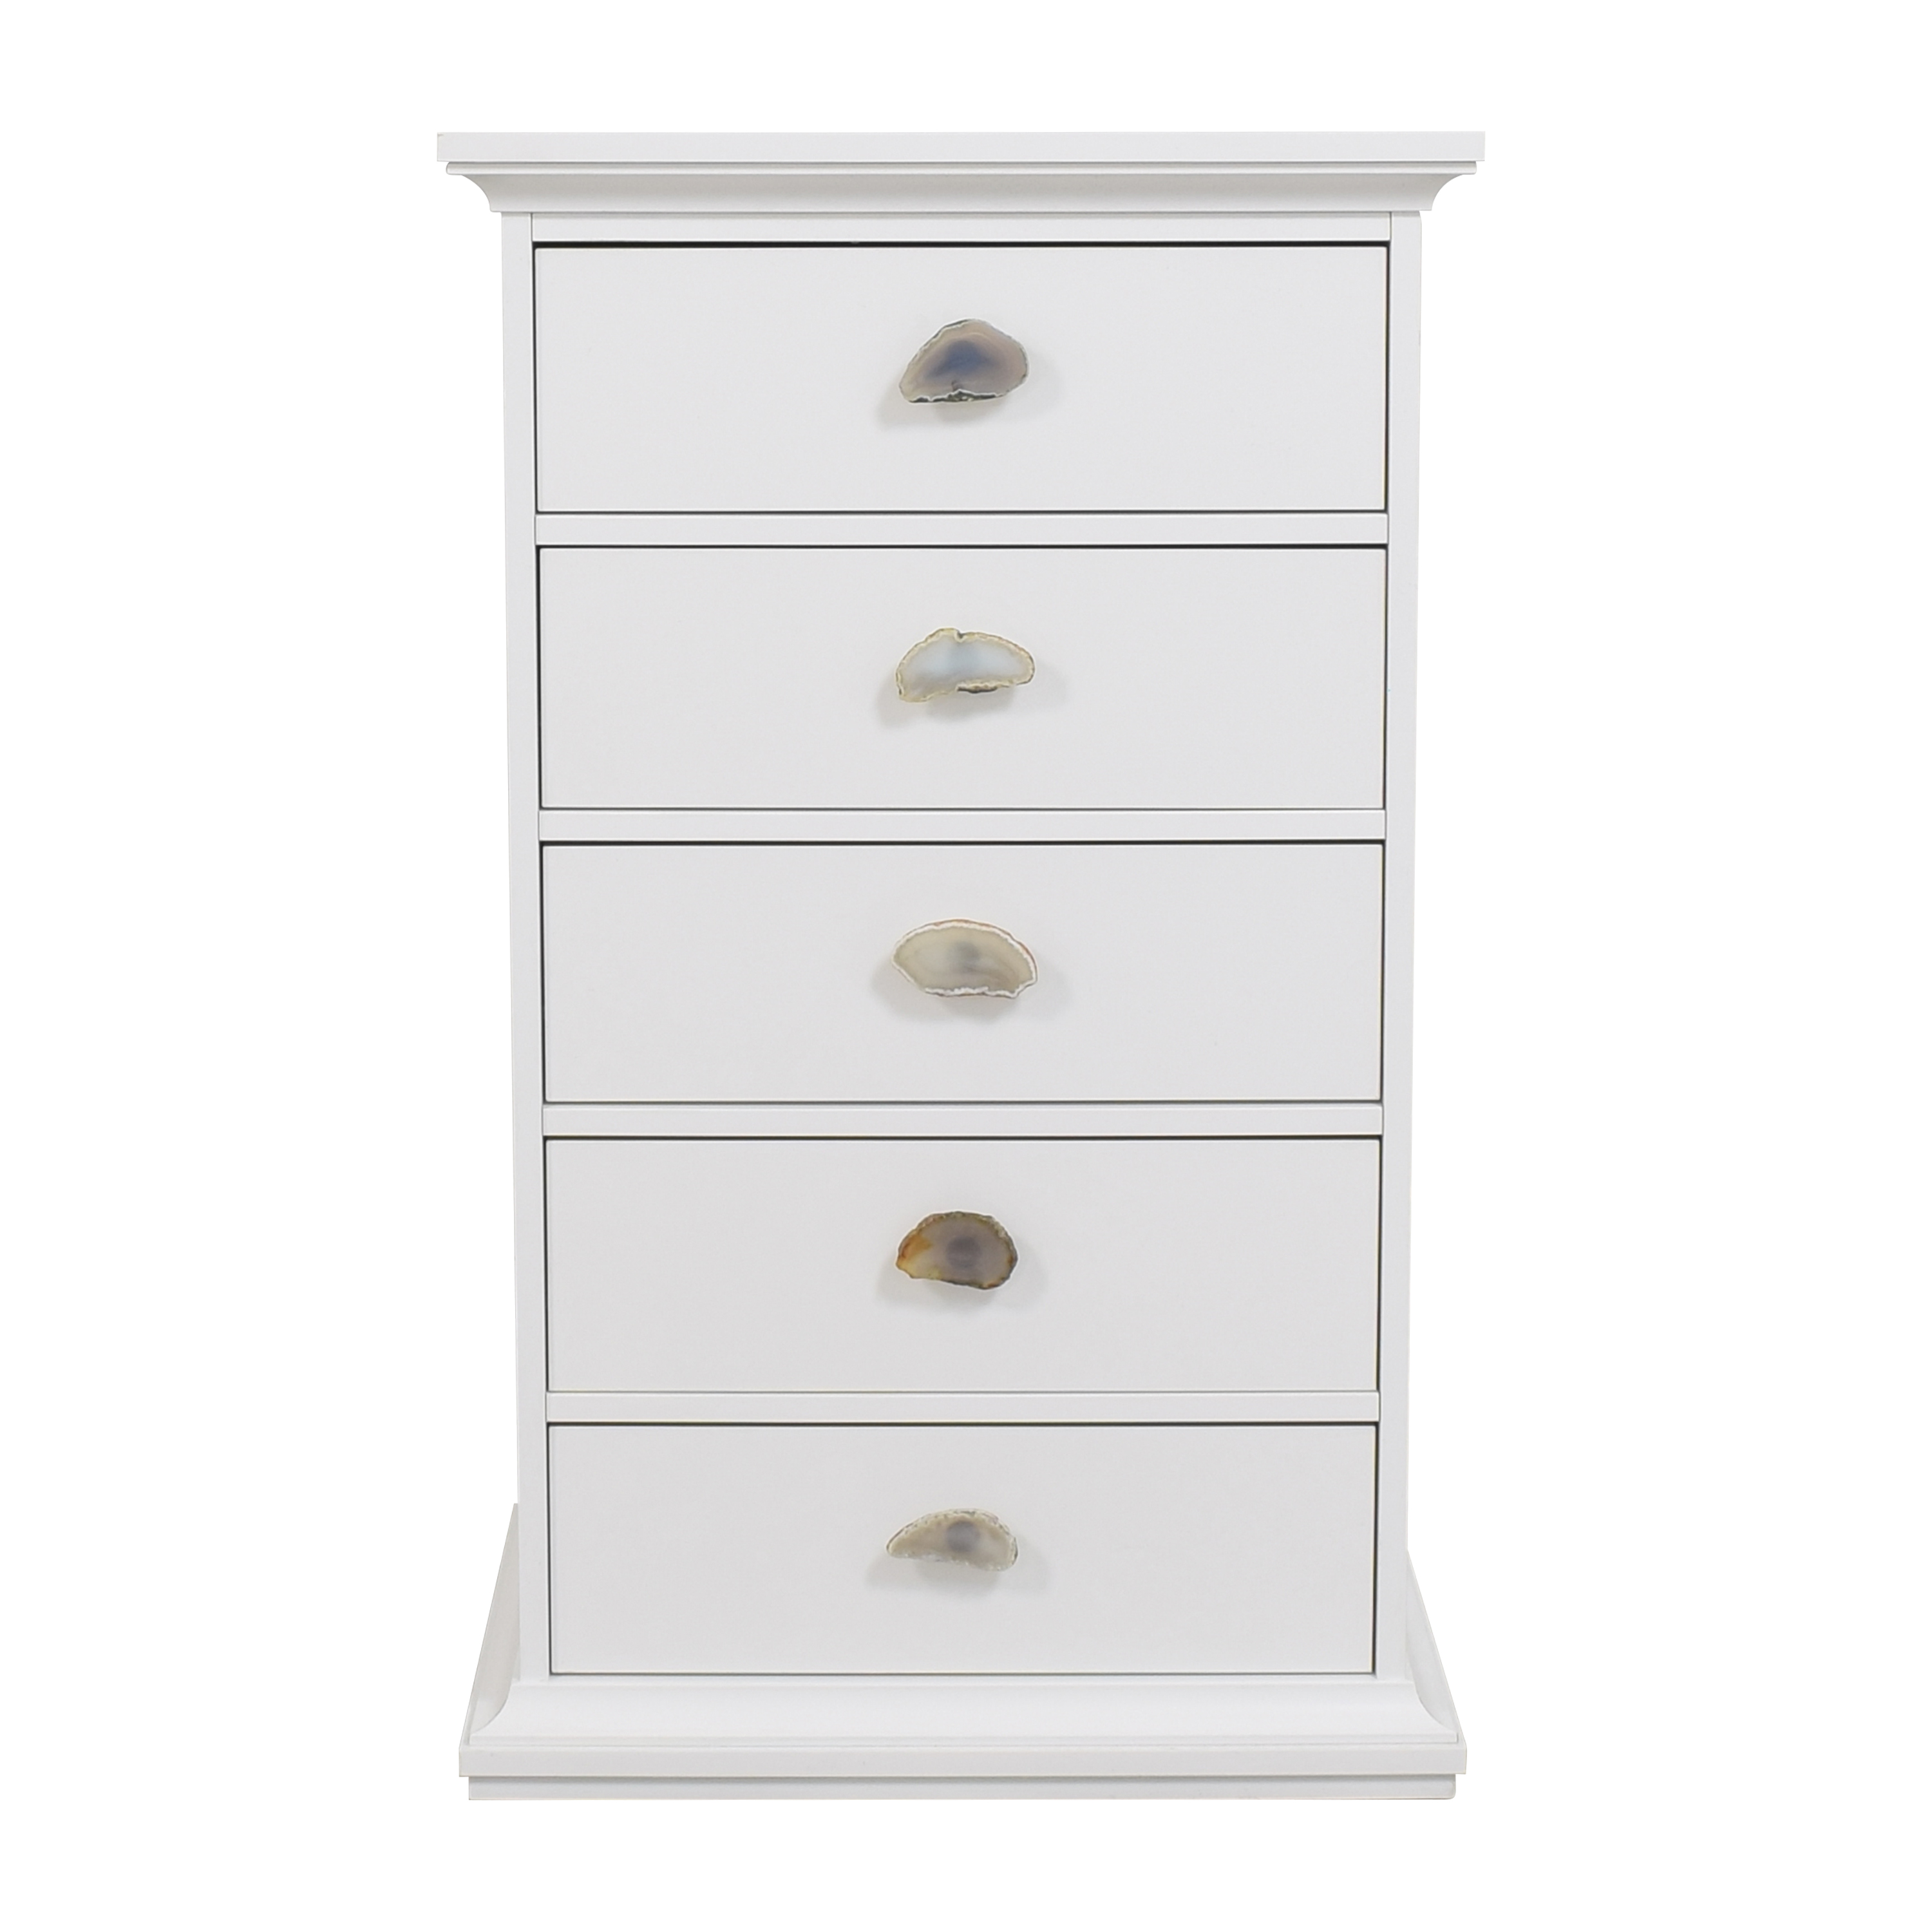 Wayfair Five Drawer Chest with Decorative Knobs / Dressers